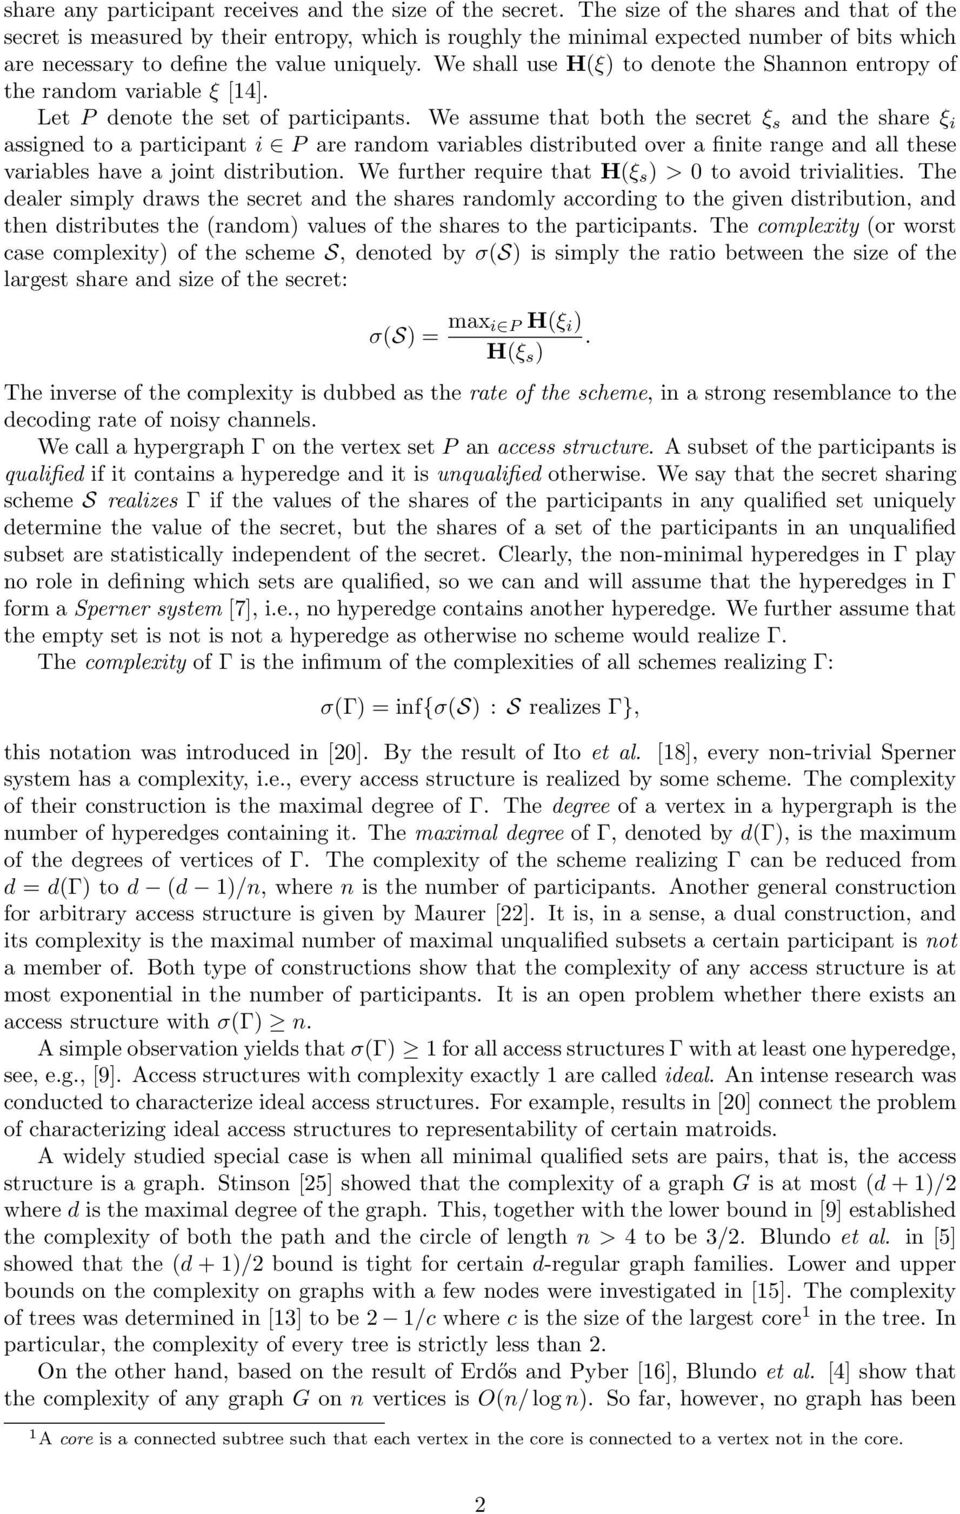 We shall use H(ξ) to denote the Shannon entropy of the random variable ξ [14]. Let P denote the set of participants.